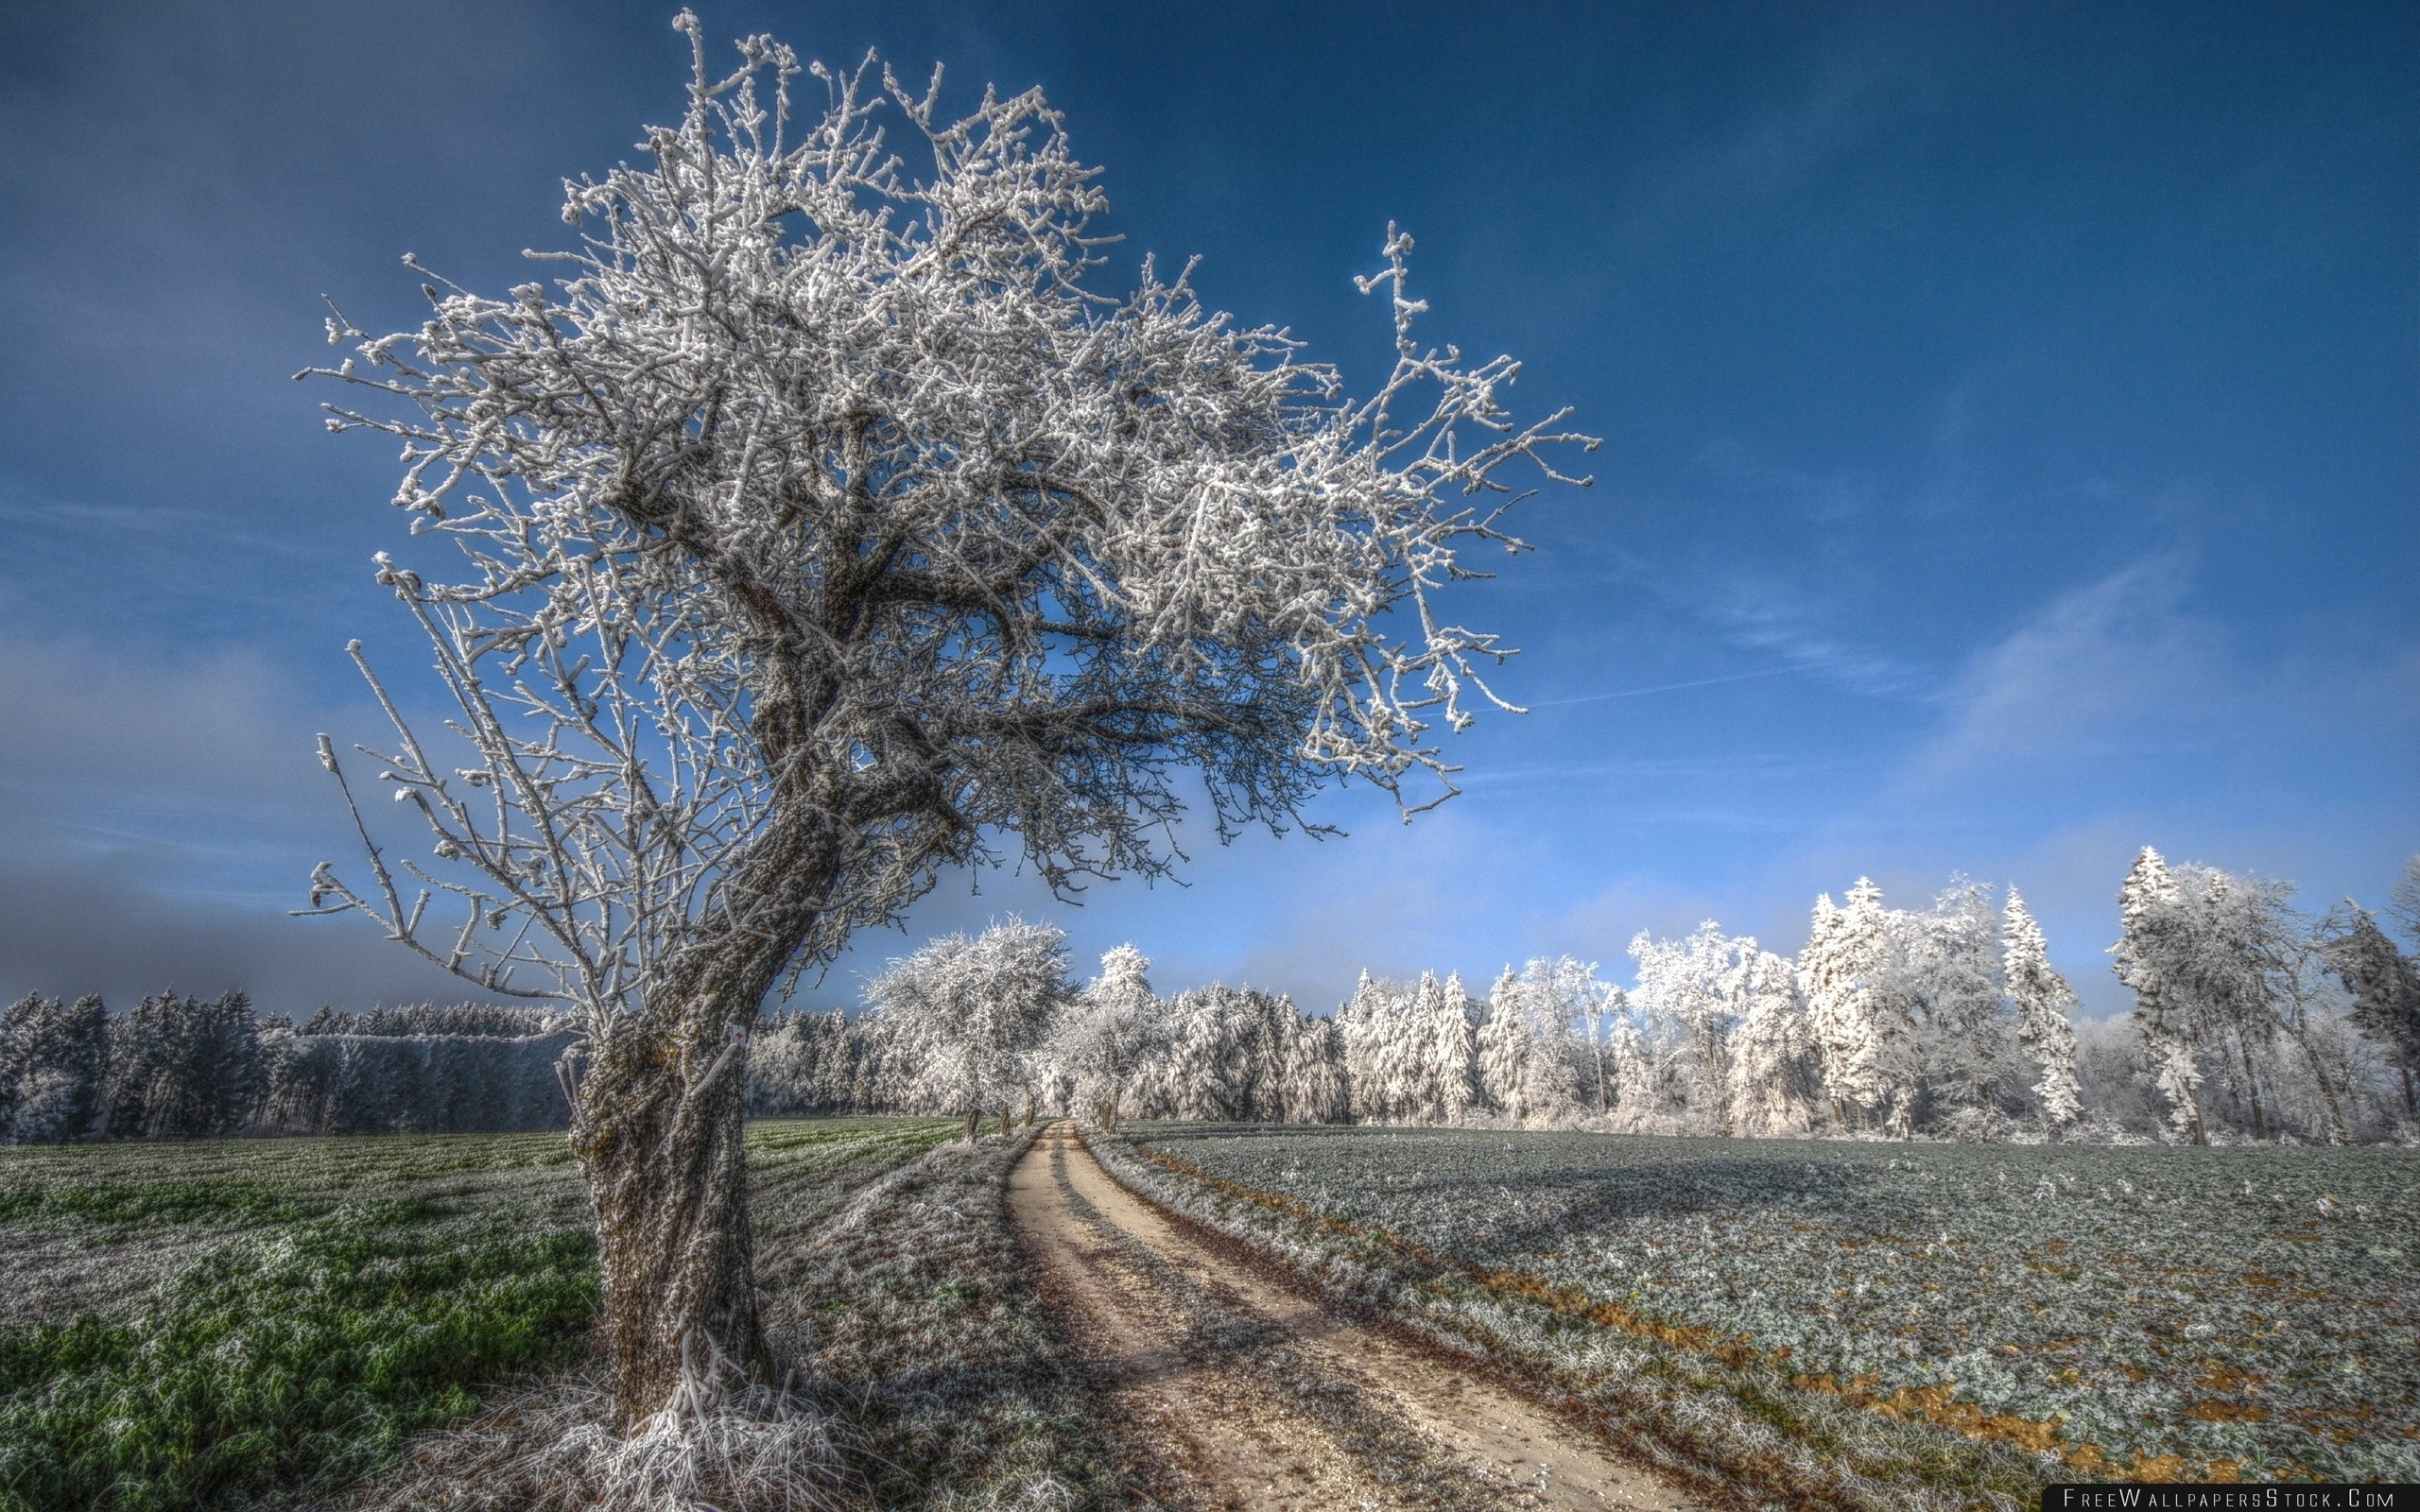 Download Free Wallpaper Tree Road Hoarfrost Gray Hair Cold Frost November Field Grass Sky Blue Freshness